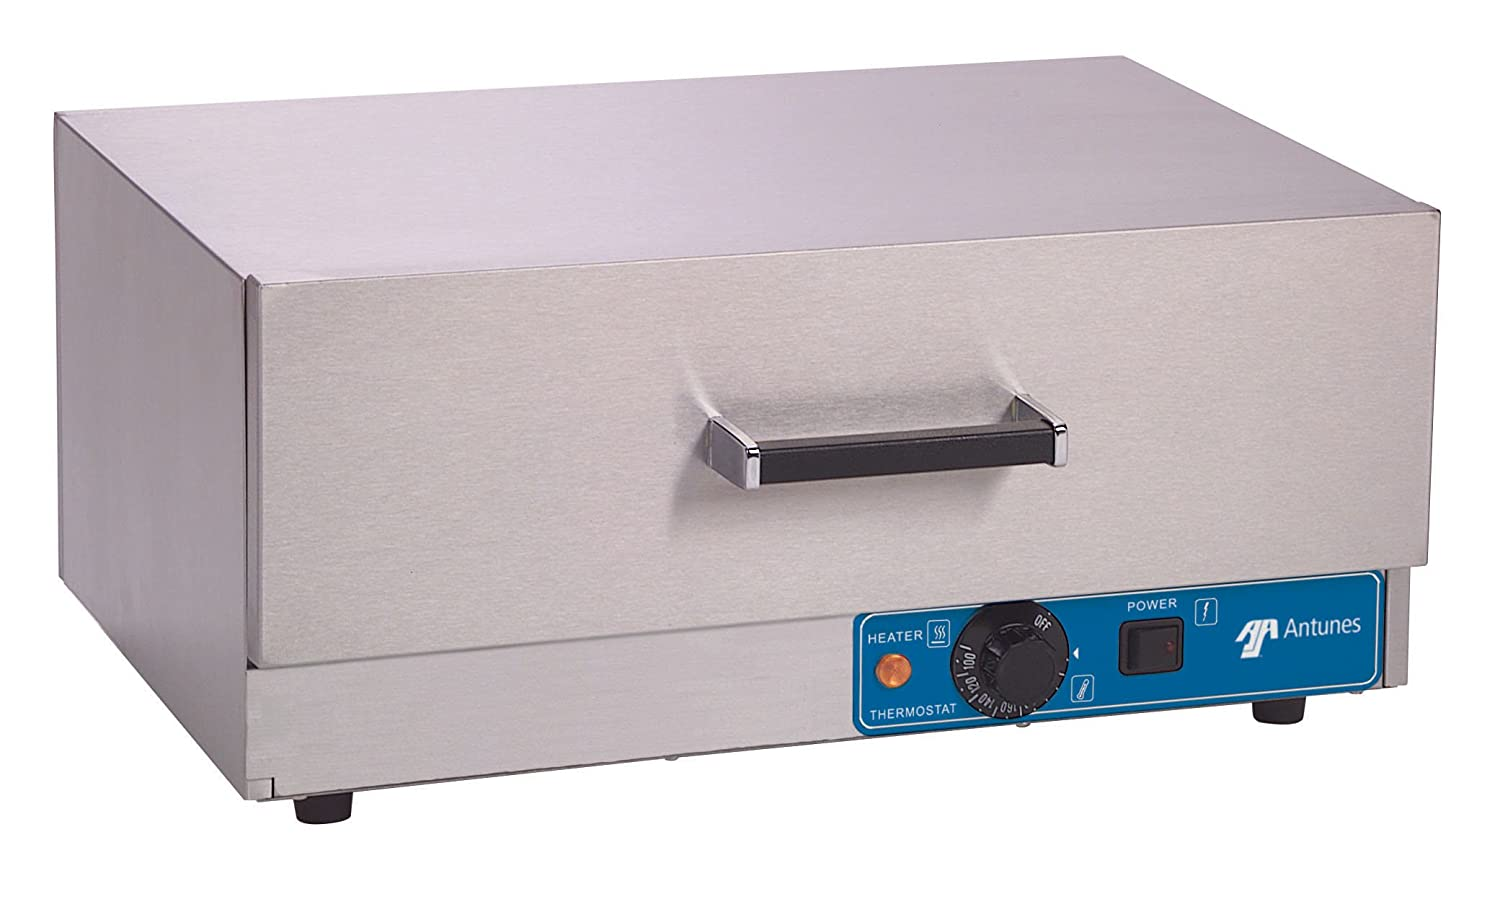 Antunes 9400130 WD-20 Warming Drawer, 18.75' Length, 22' Width, 10.25' Height 18.75 Length 22 Width 10.25 Height AJA9400130